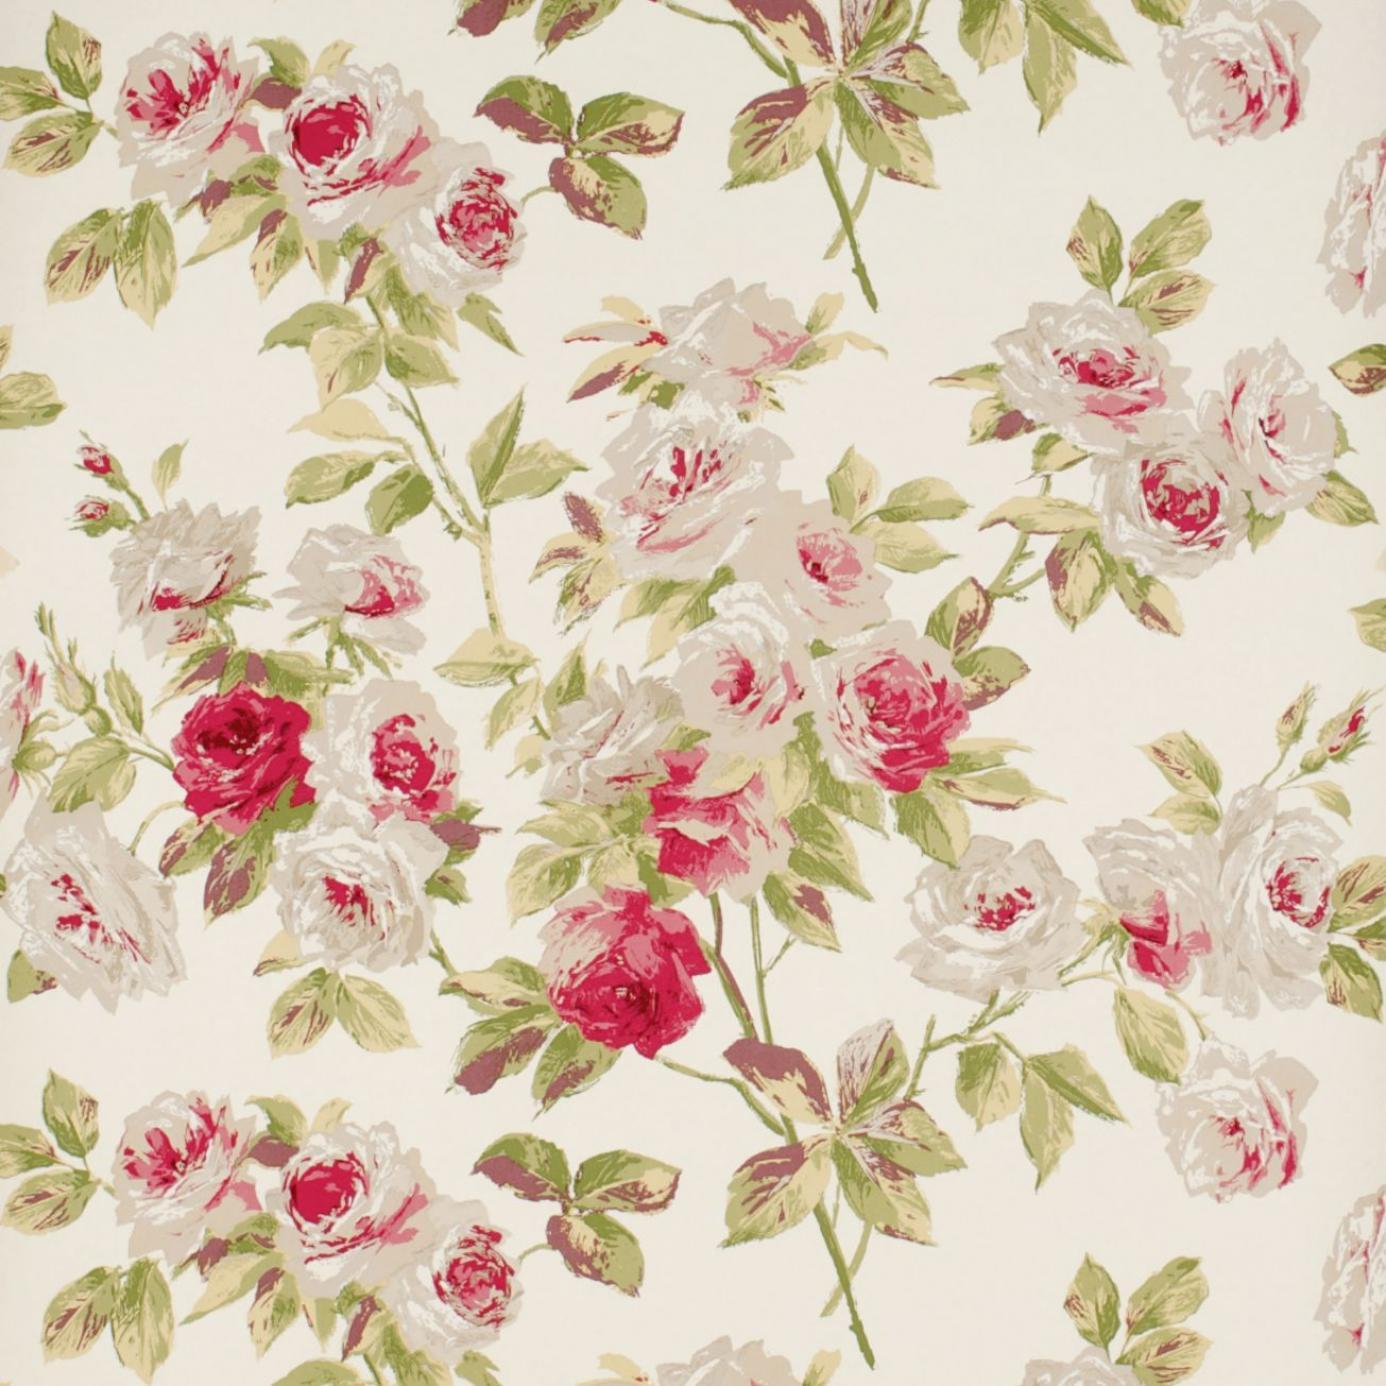 Vintage Flowers Wallpapers - Wallpaper Cave